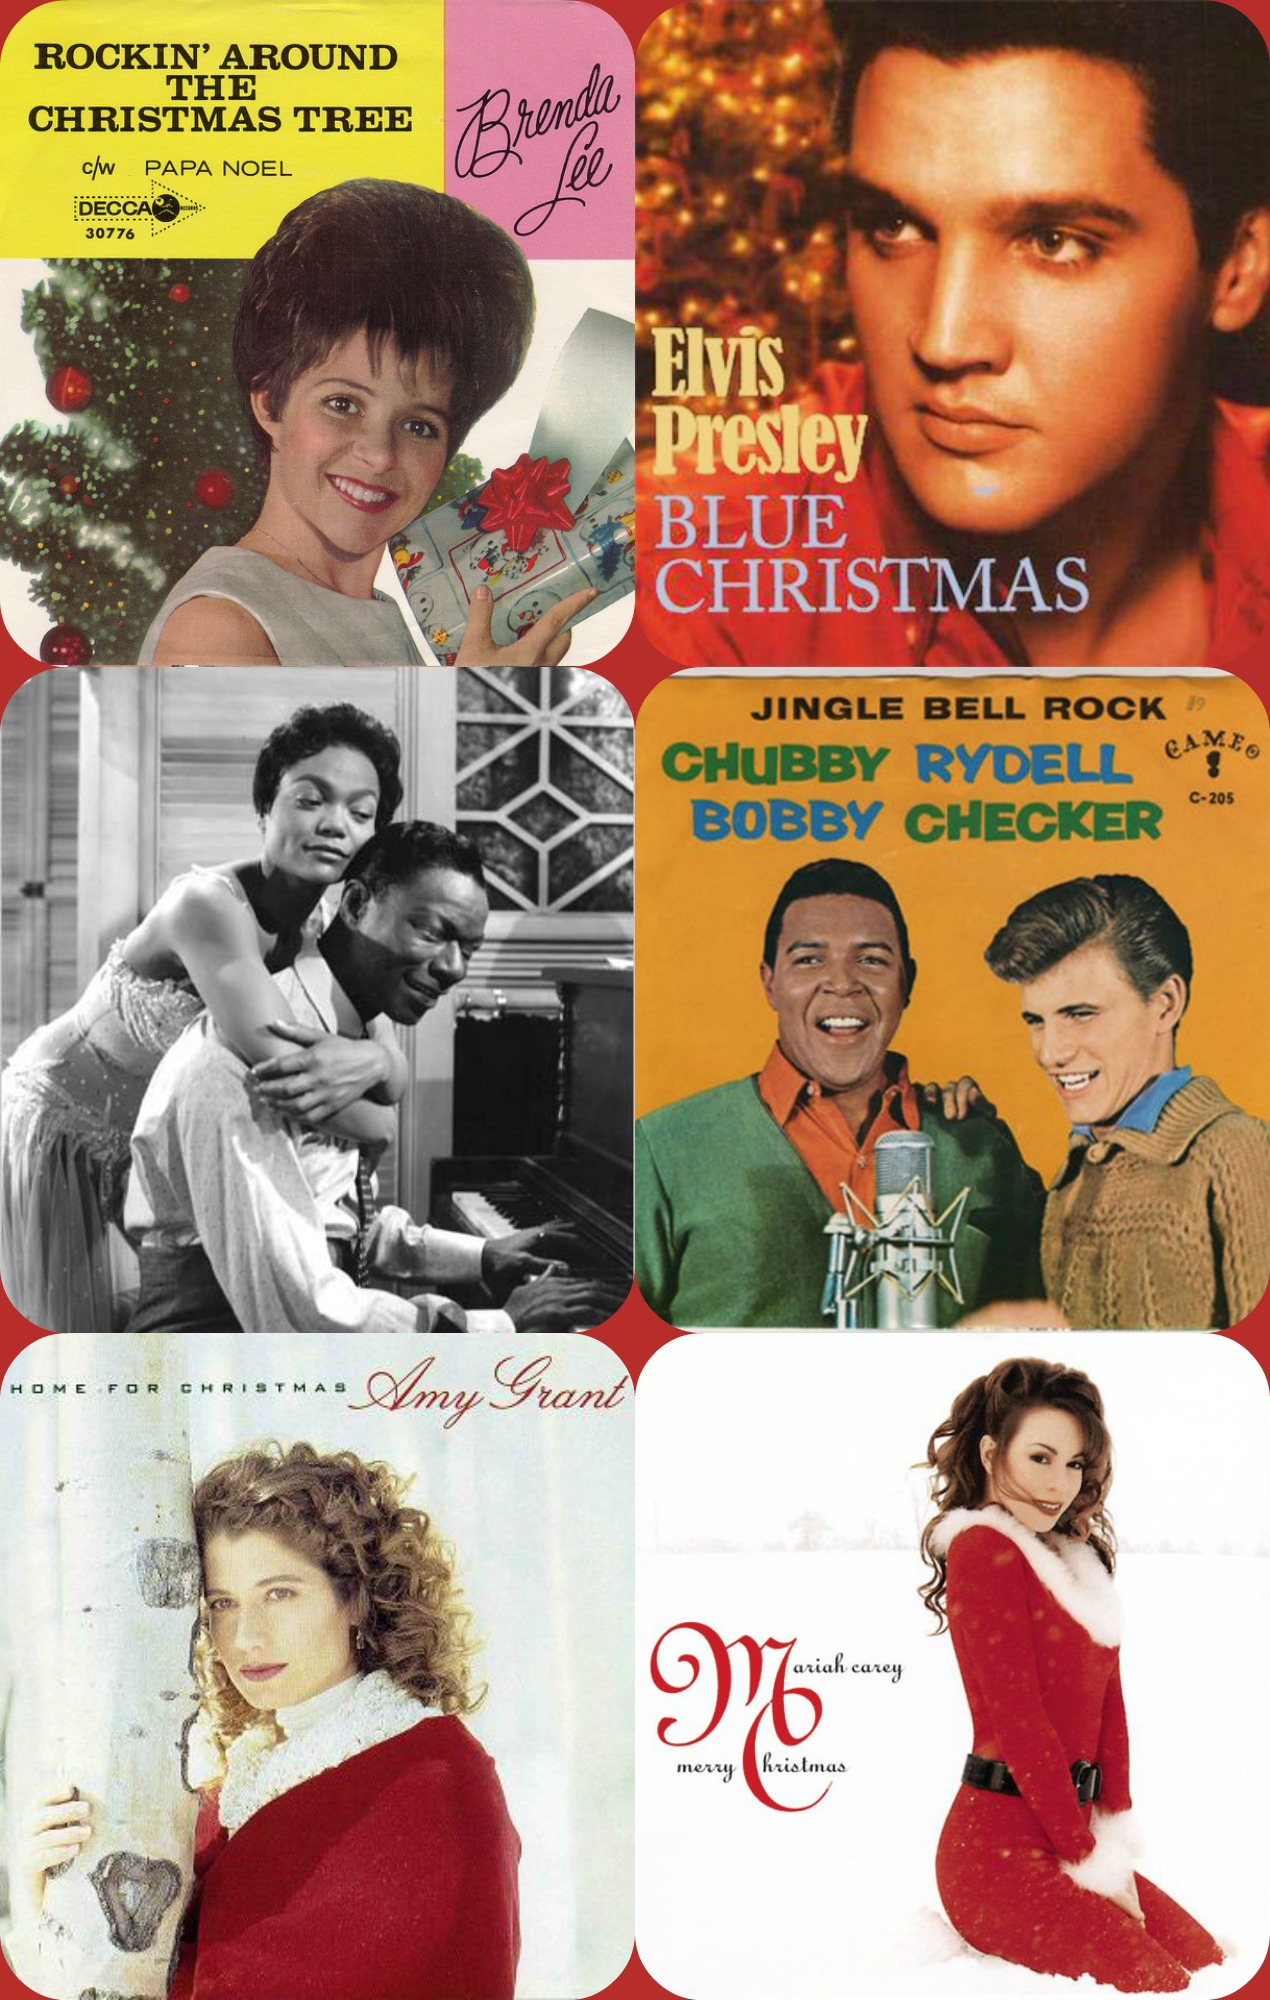 The 25 Best Carpets Ideas On Pinterest: The 25 Best Christmas Songs Of All Time